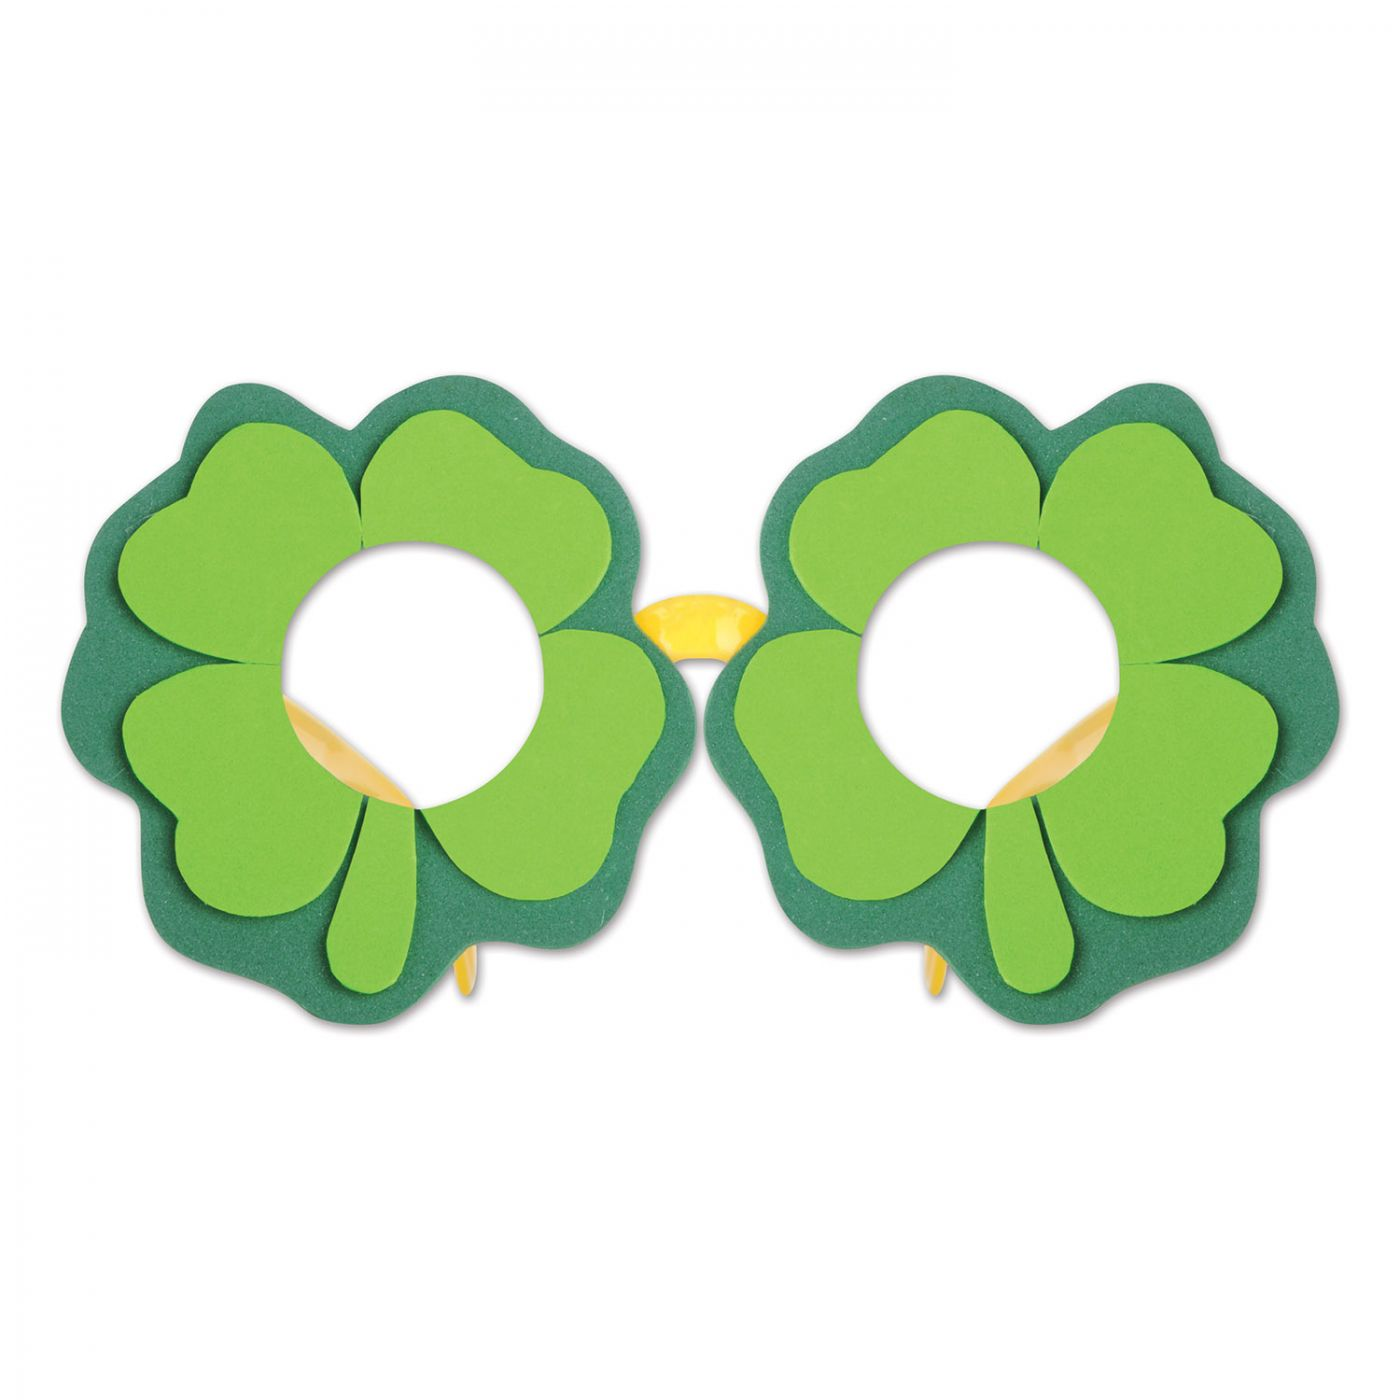 Shamrock Glasses image